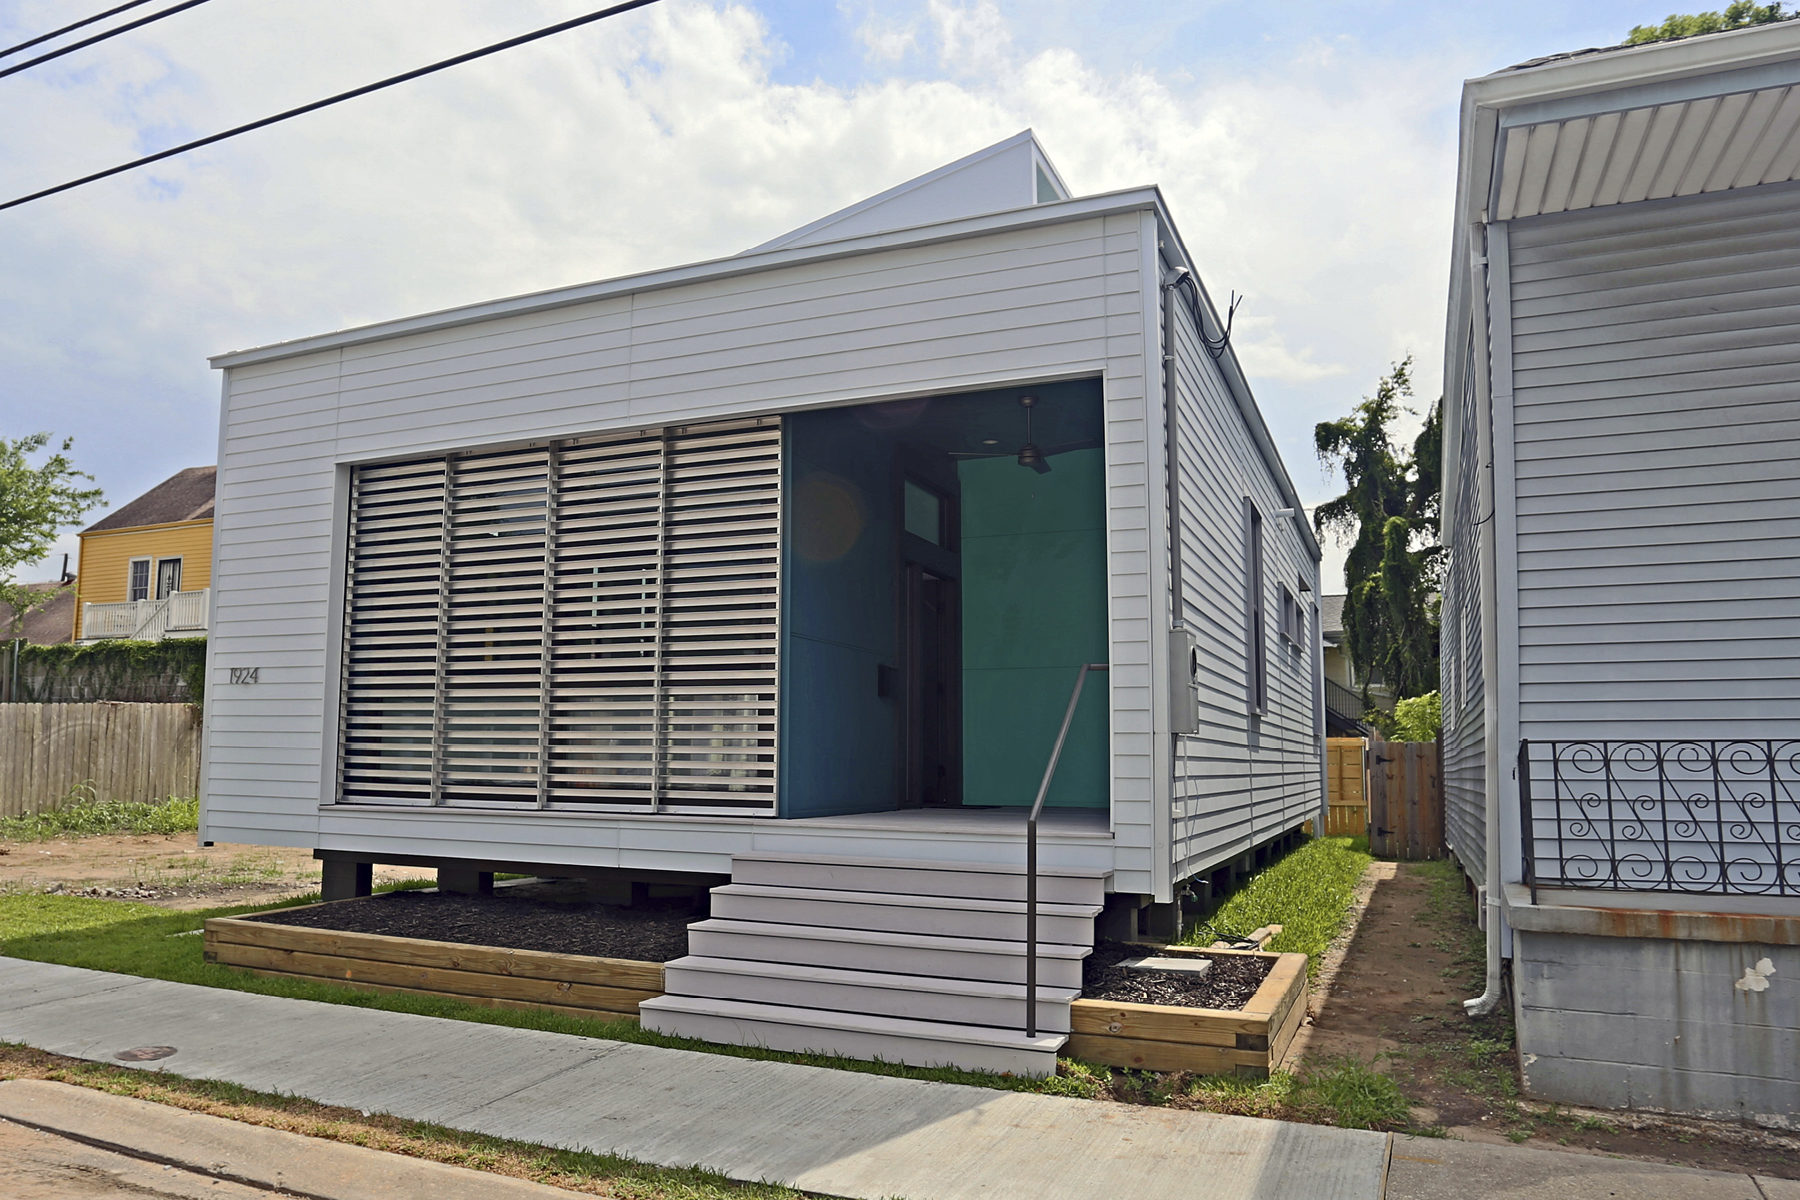 Front view of a modern rectangular home with metal shade screen on the porch